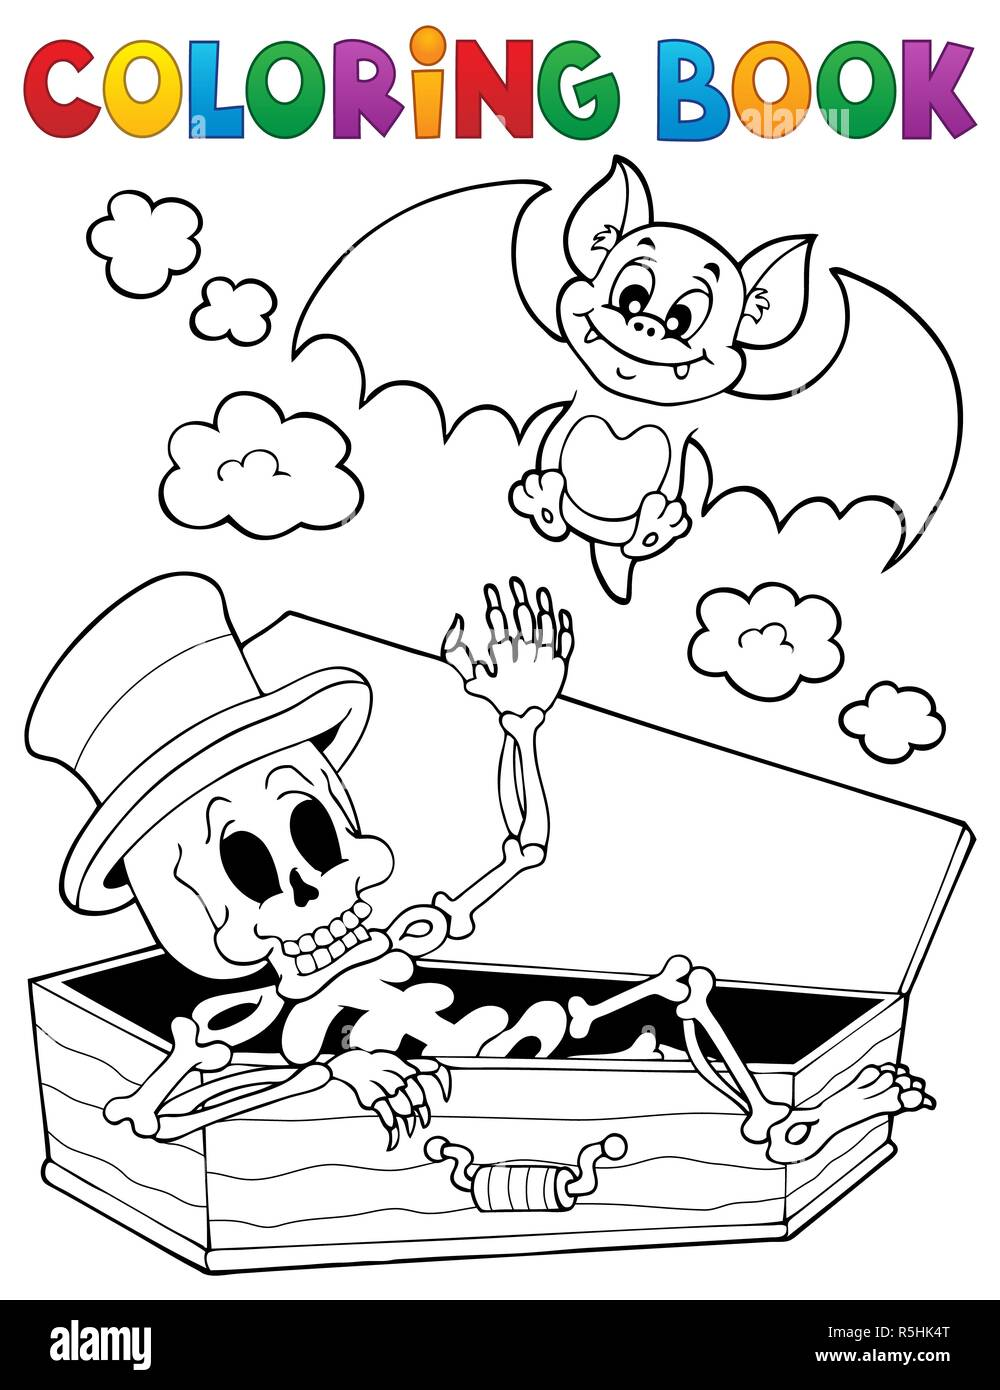 Coloring book skeleton and bat Stock Photo: 227196280 - Alamy